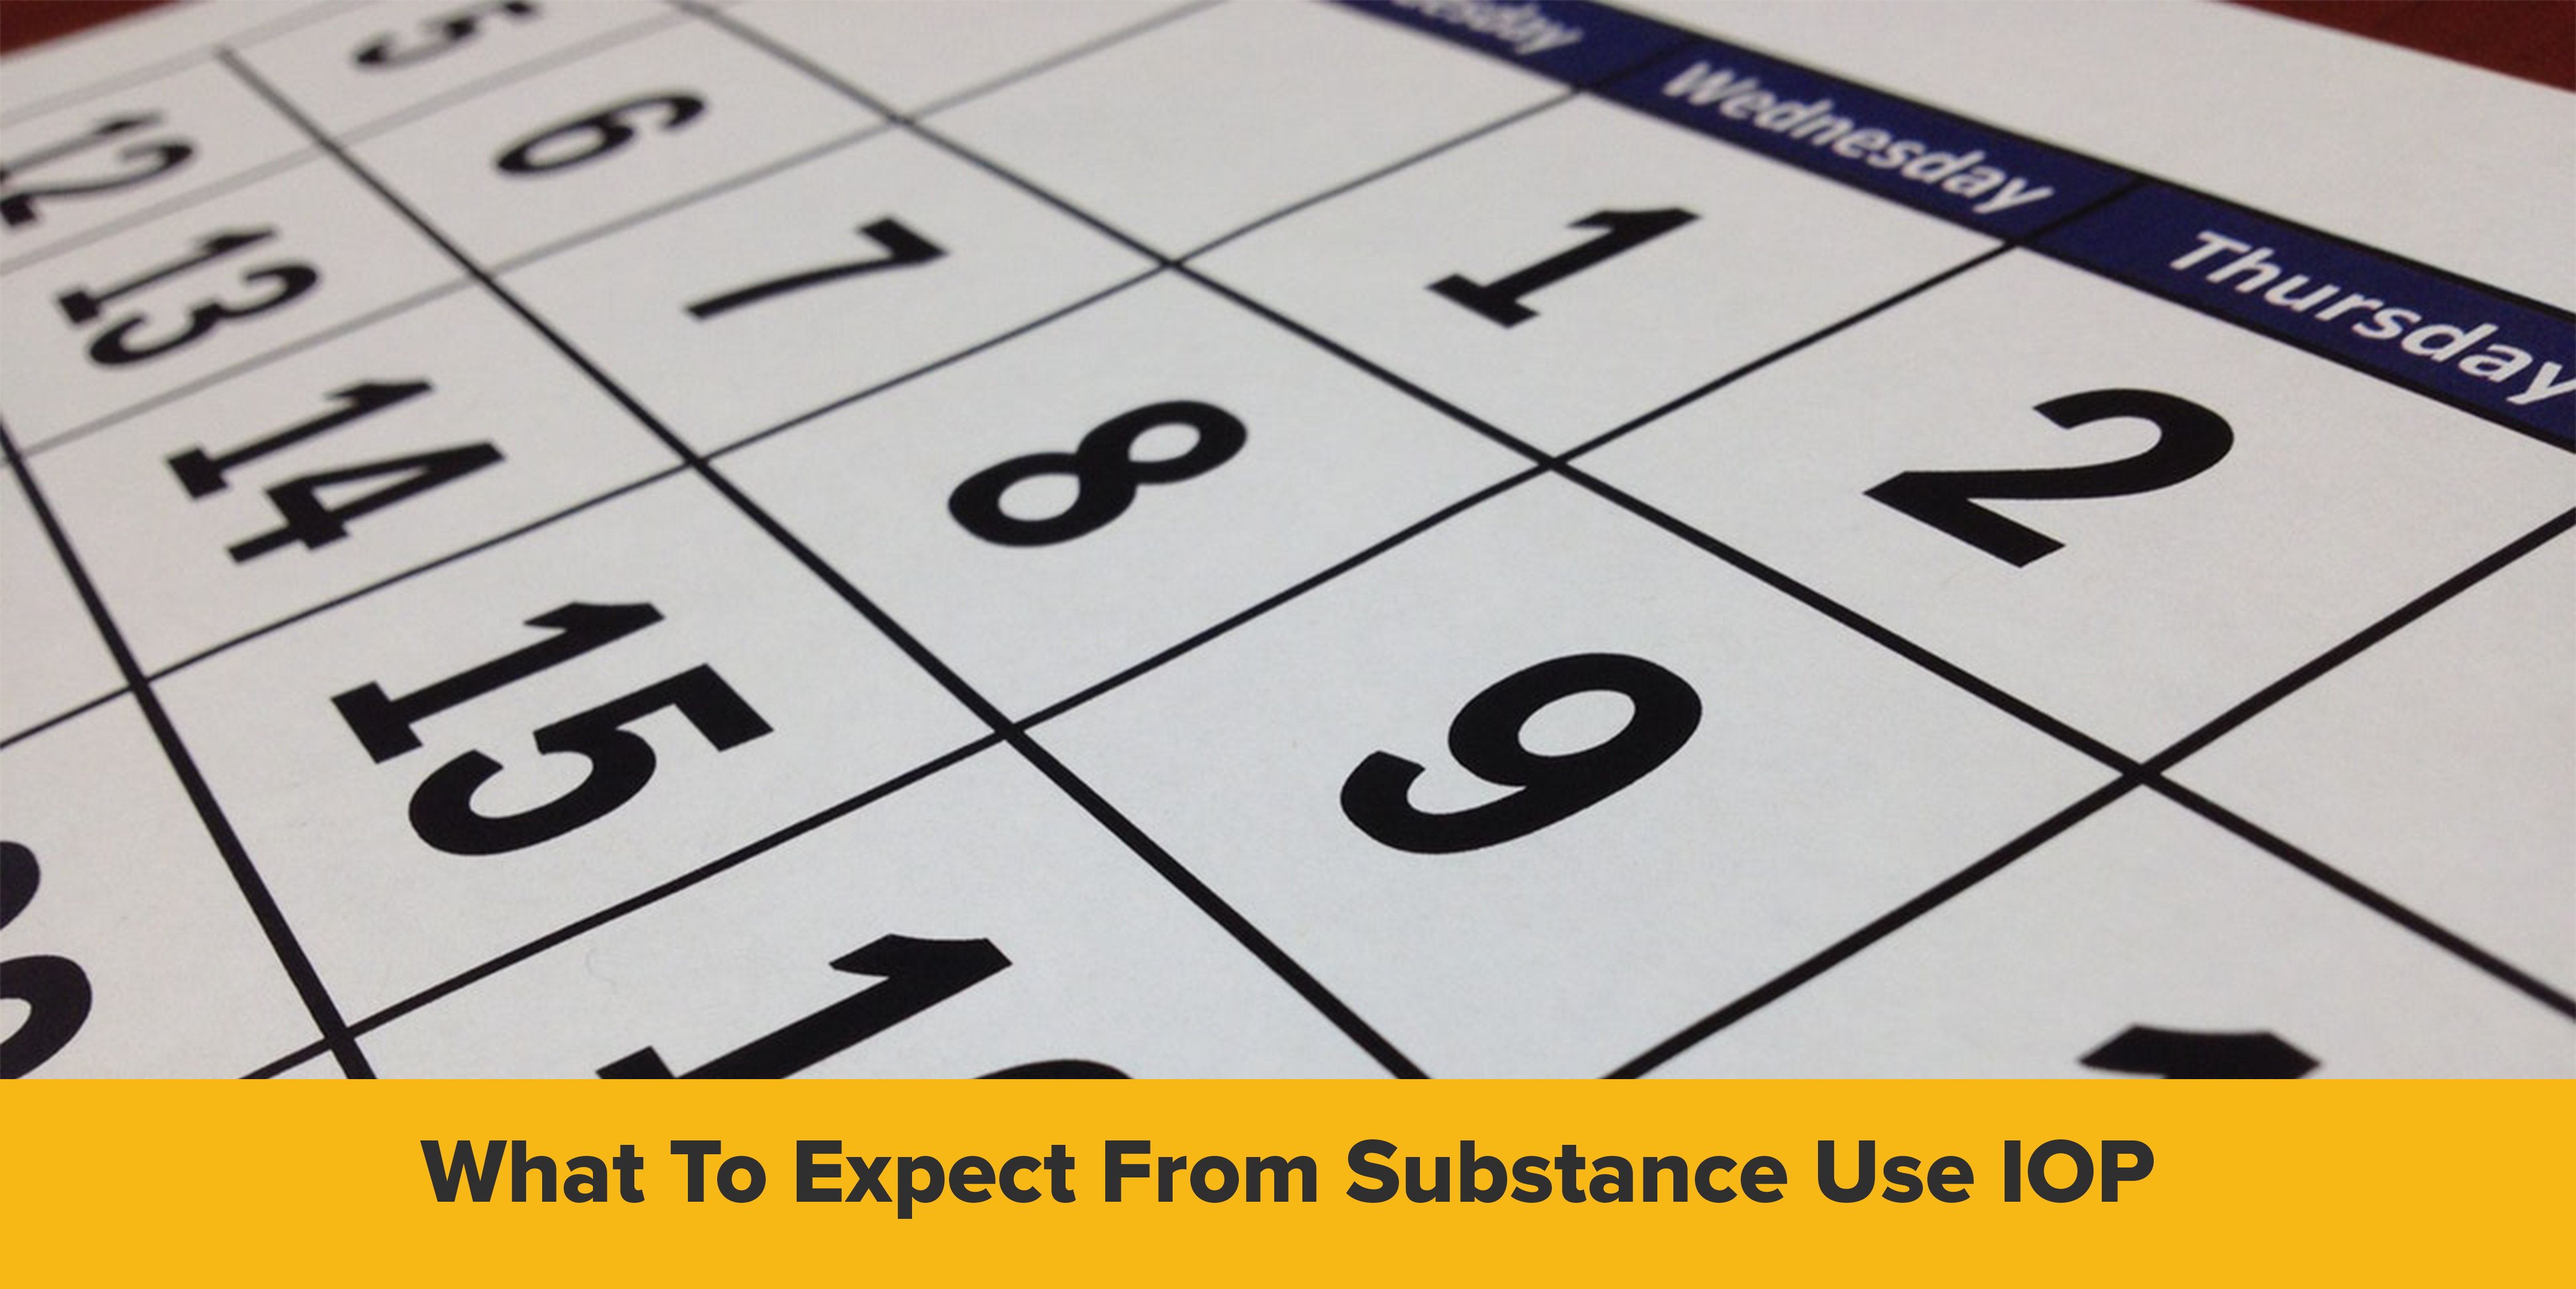 What to expect from substance use iop